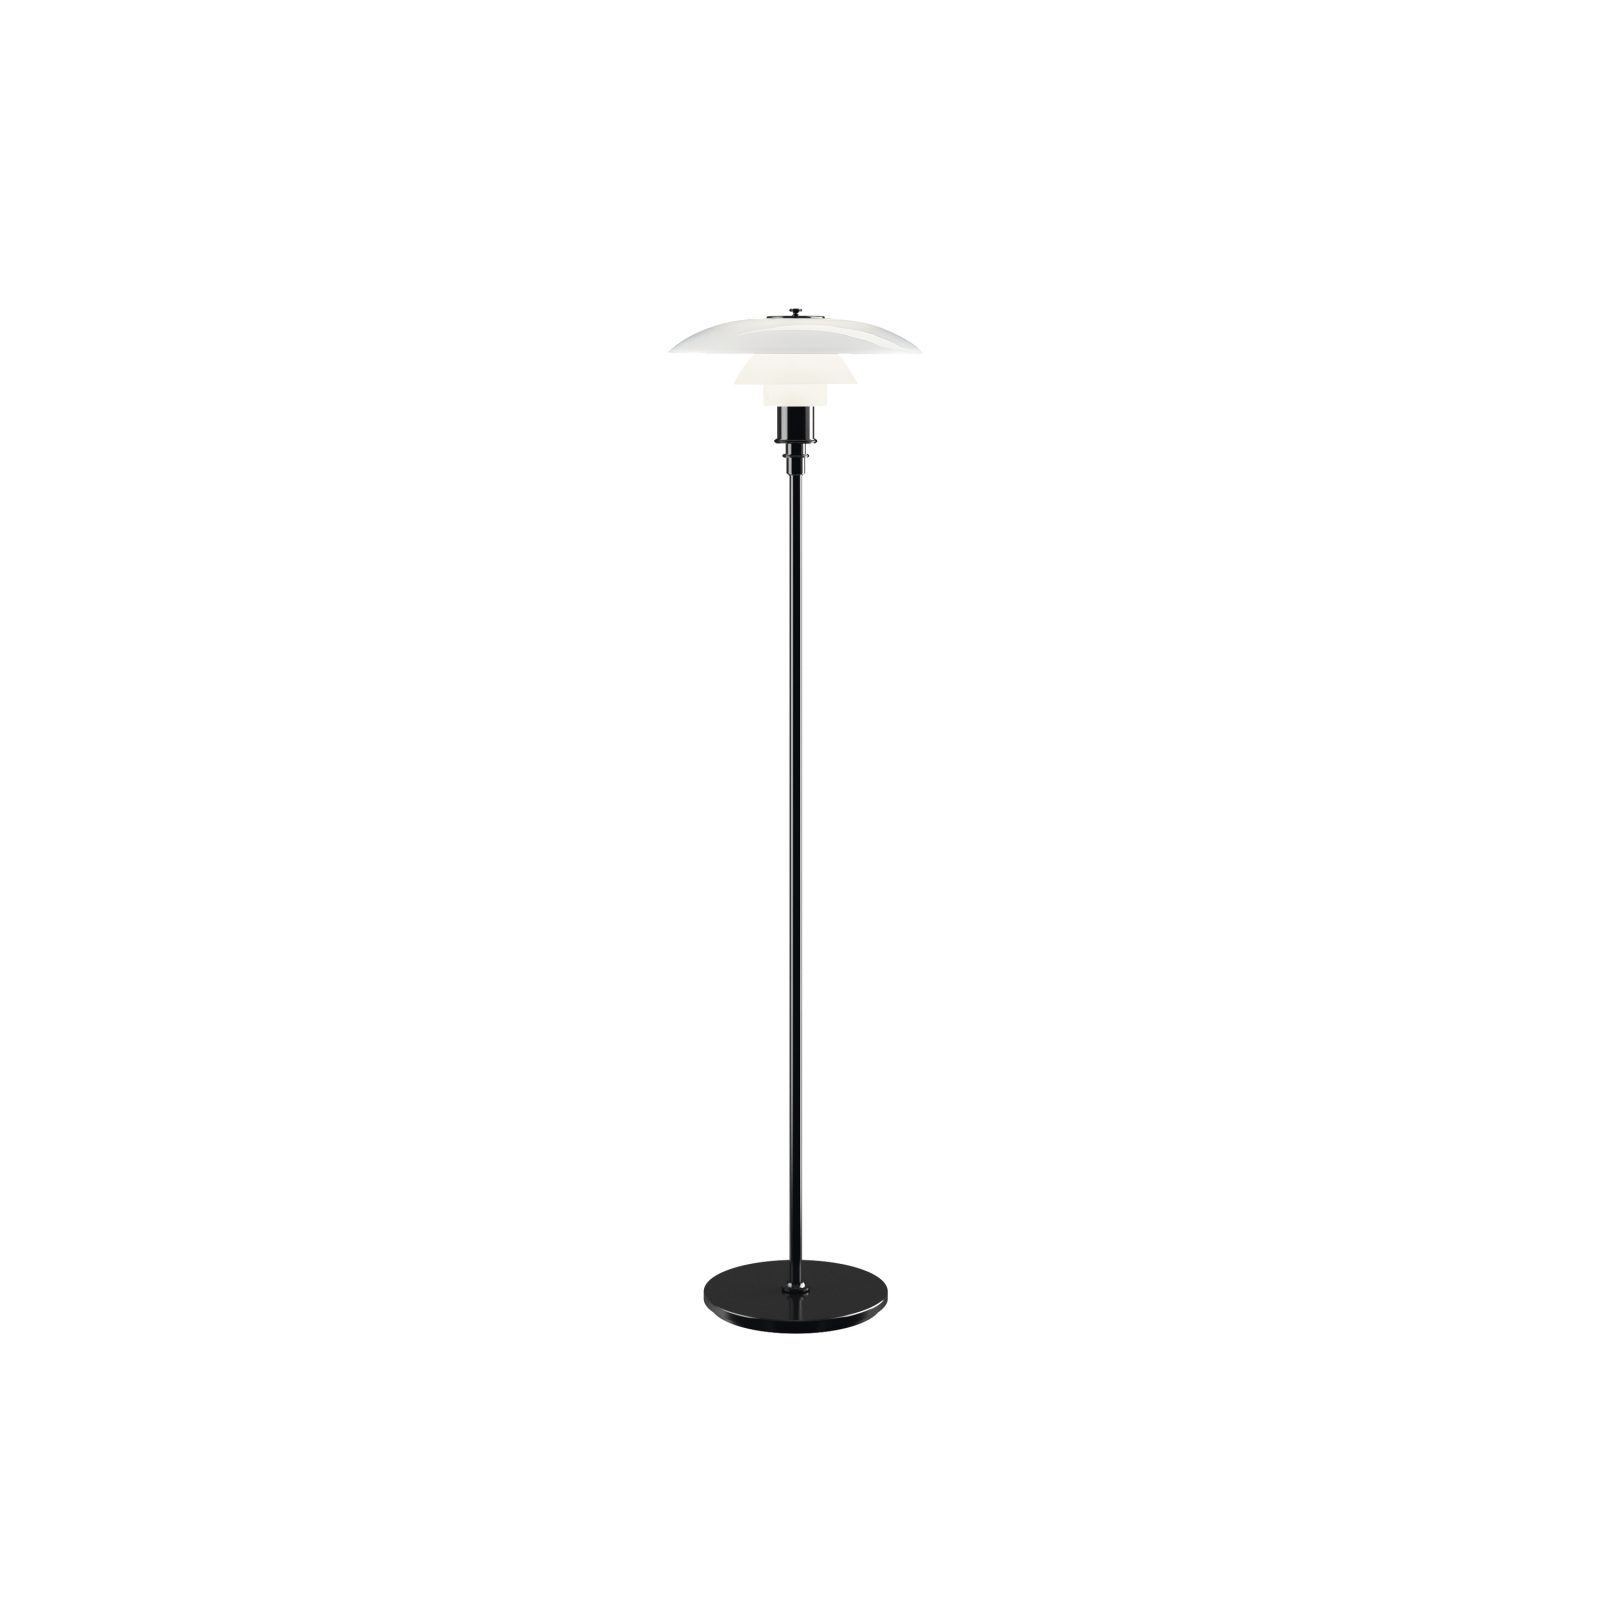 Louis Poulsen PH 3 ½ - 2 ½ Floor Lamp